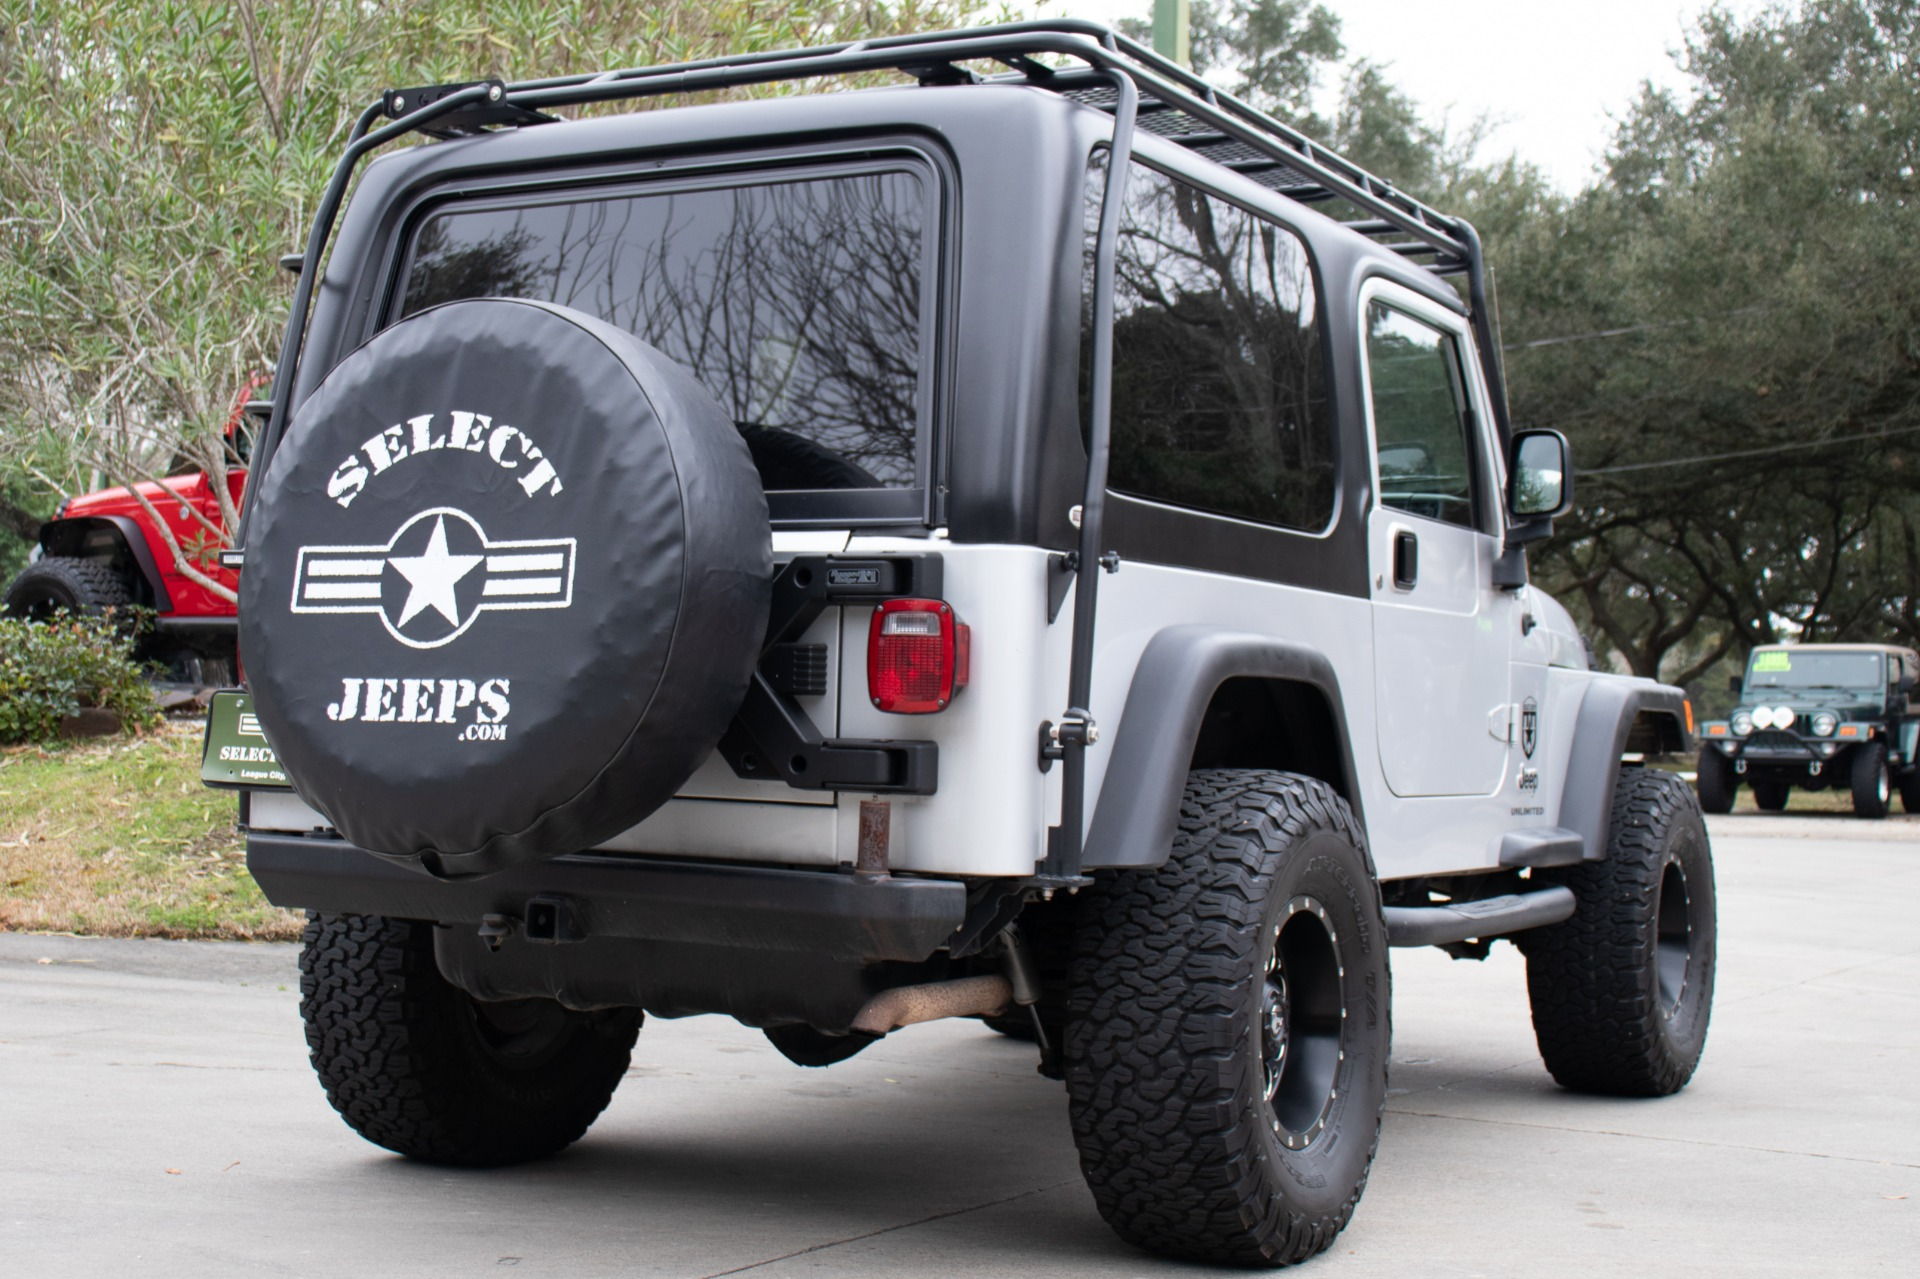 Used 2004 Jeep Wrangler Unlimited For Sale 20 995